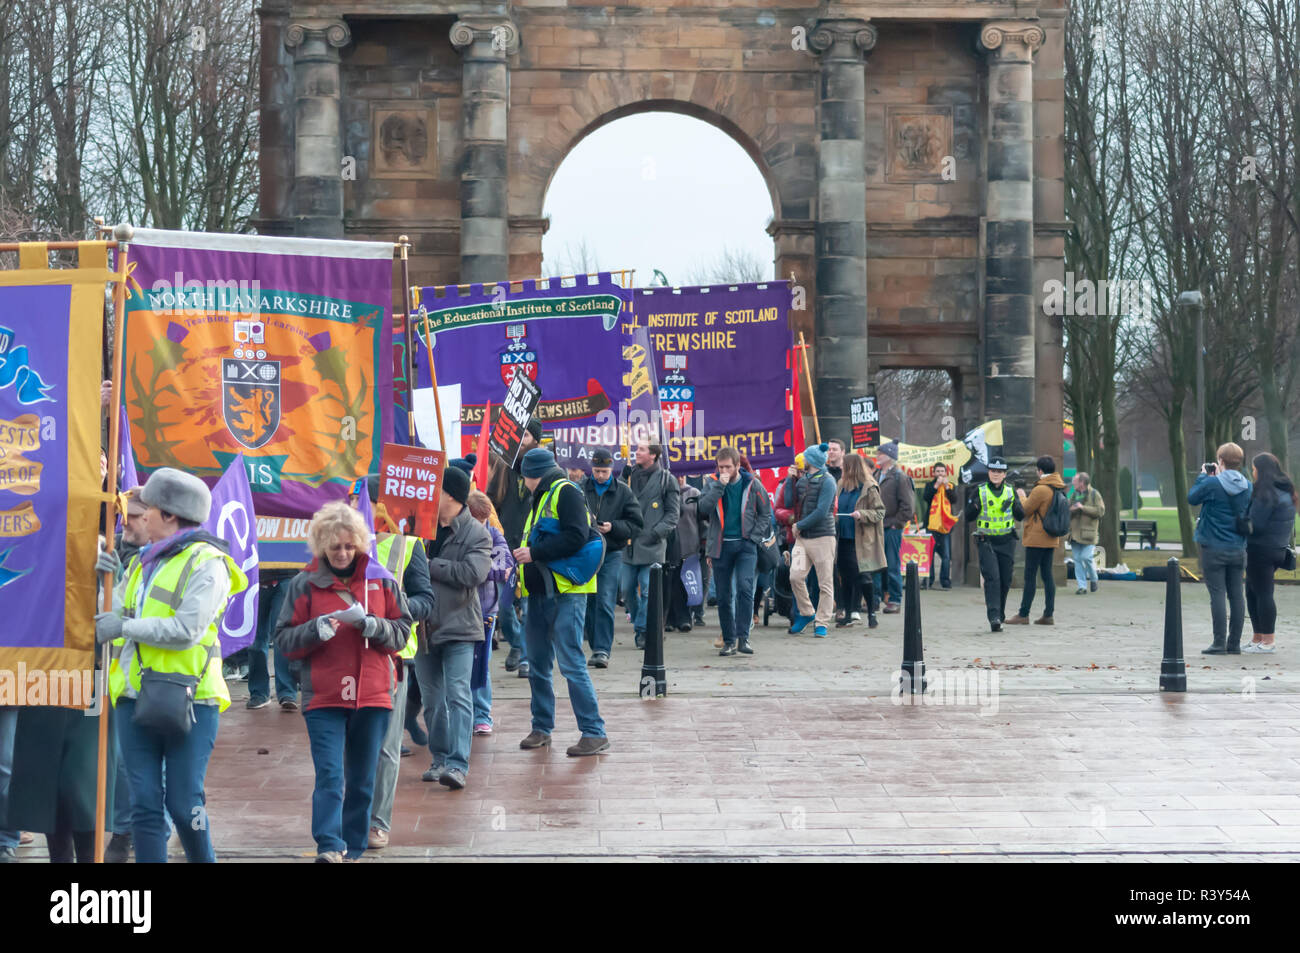 Glasgow, Scotland, UK. 24th November, 2018: Anti-racism campaigners march through the streets of the city from Glasgow Green to Bath Street. The event was organised by the Scottish Trades Union Congress, STUC.  The theme of the march is Still We Rise,  Internationalism, Freedom and Justice. The march was led by the leader of the Scottish Labour Party Richard Leonard MSP, Anas Sarwar MSP, Human Rights Lawyer Aamer Anwar and the family of Sheku Bayoh. Credit: Skully/Alamy Live News - Stock Image